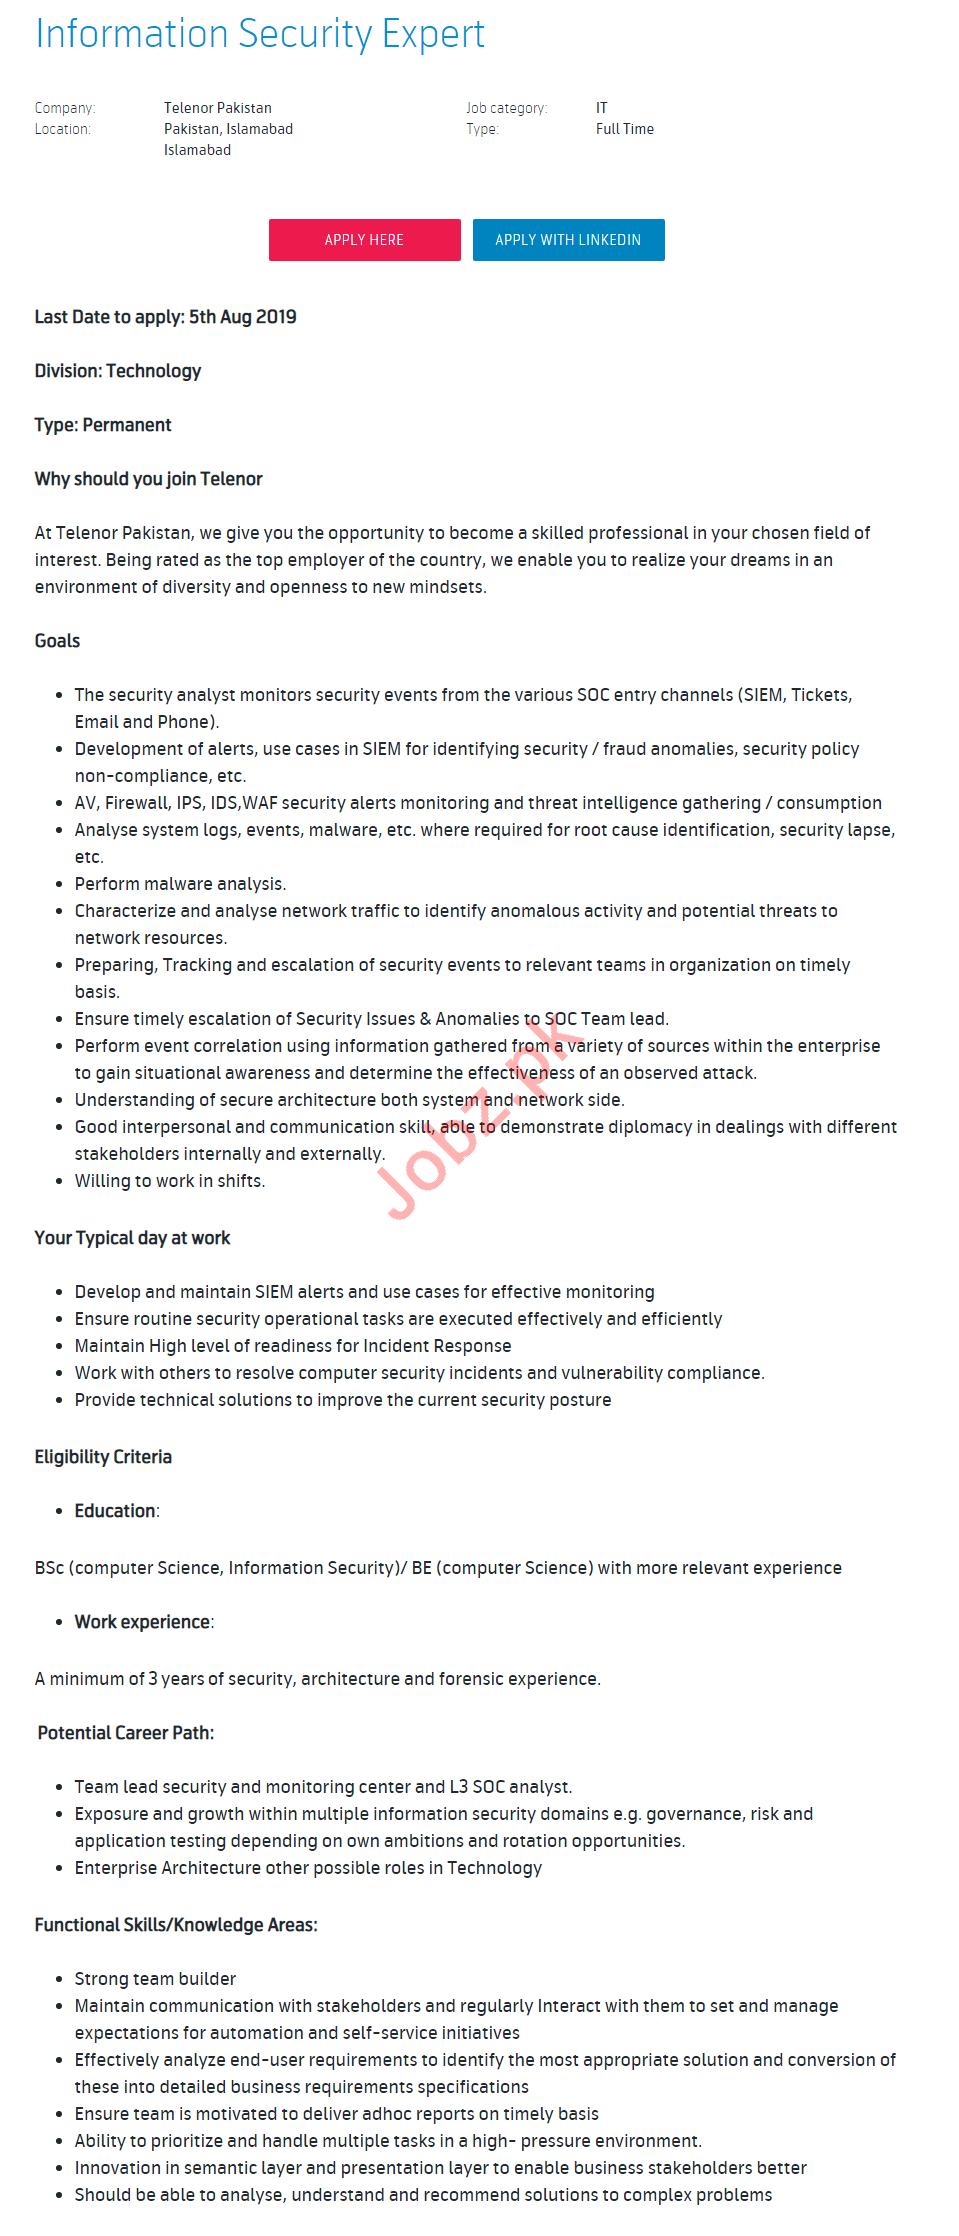 Information Security Expert Jobs 2019 in Islamabad